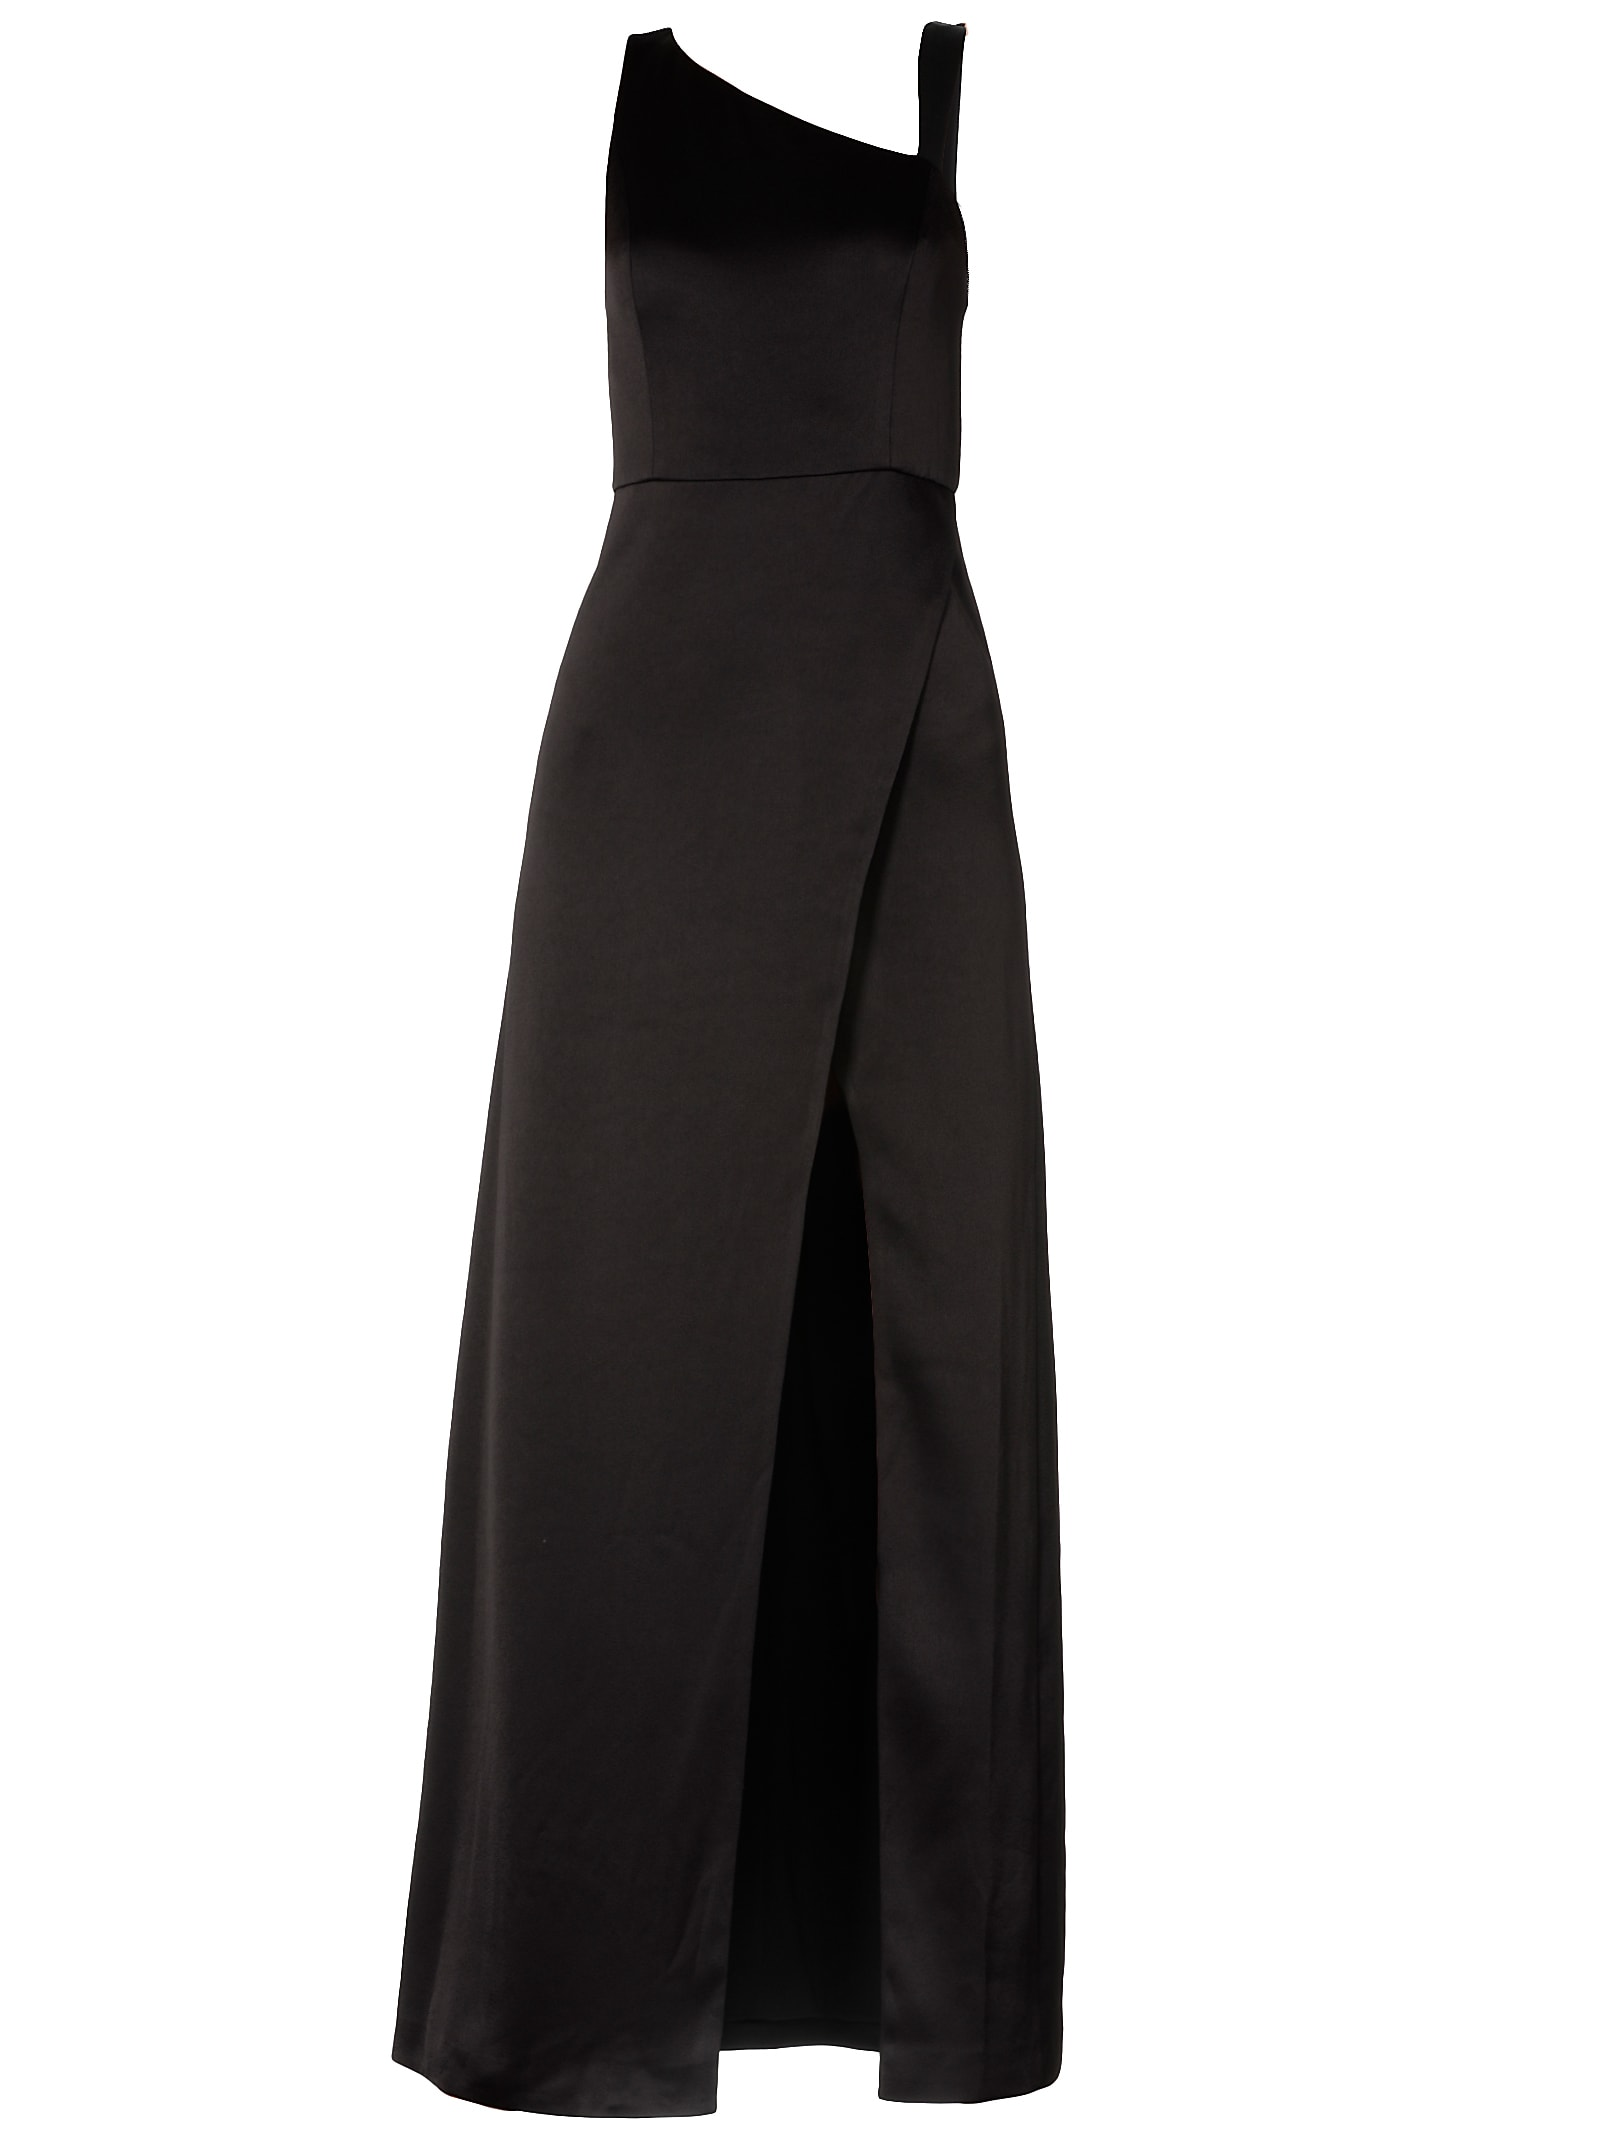 Alice + Olivia Asymmetric Dress